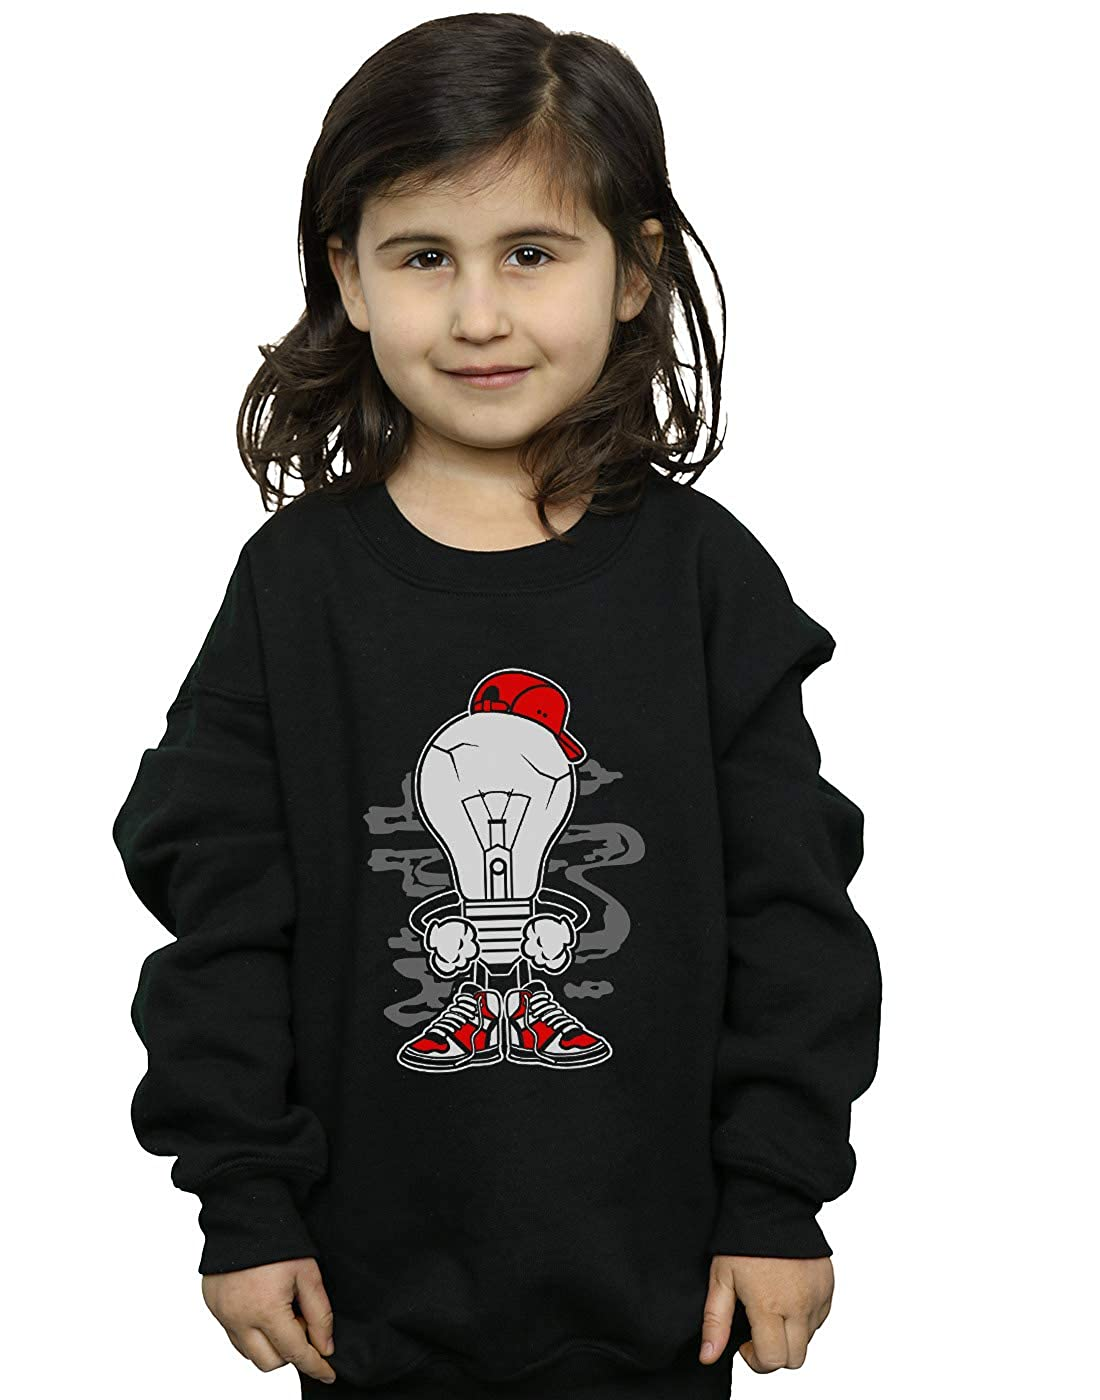 Absolute Cult Drewbacca Girls Light Boy Sweatshirt